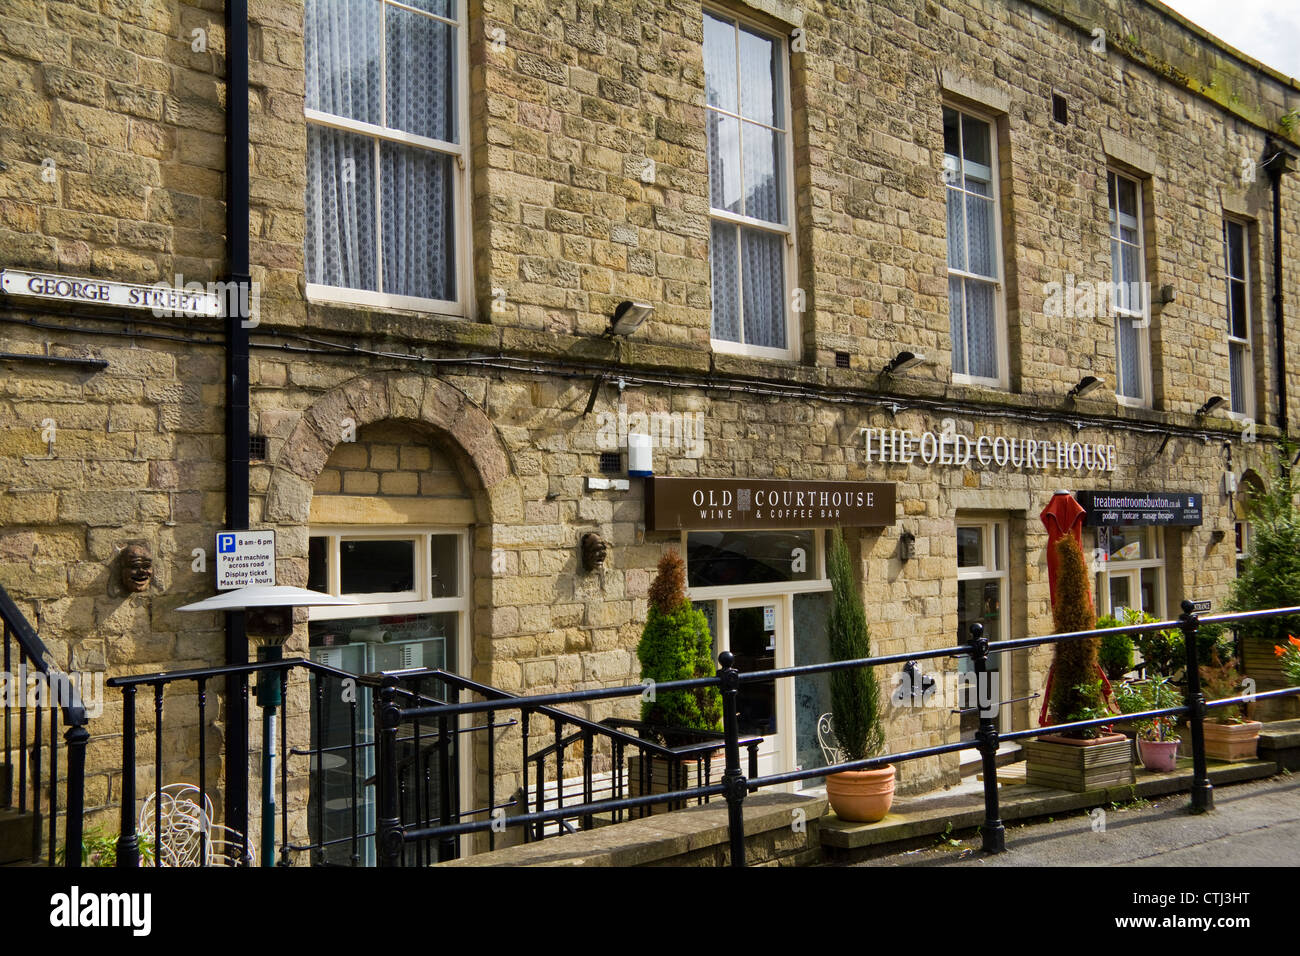 The Old Courthouse in George Street, Buxton town centre, Derbyshire England UK - Stock Image